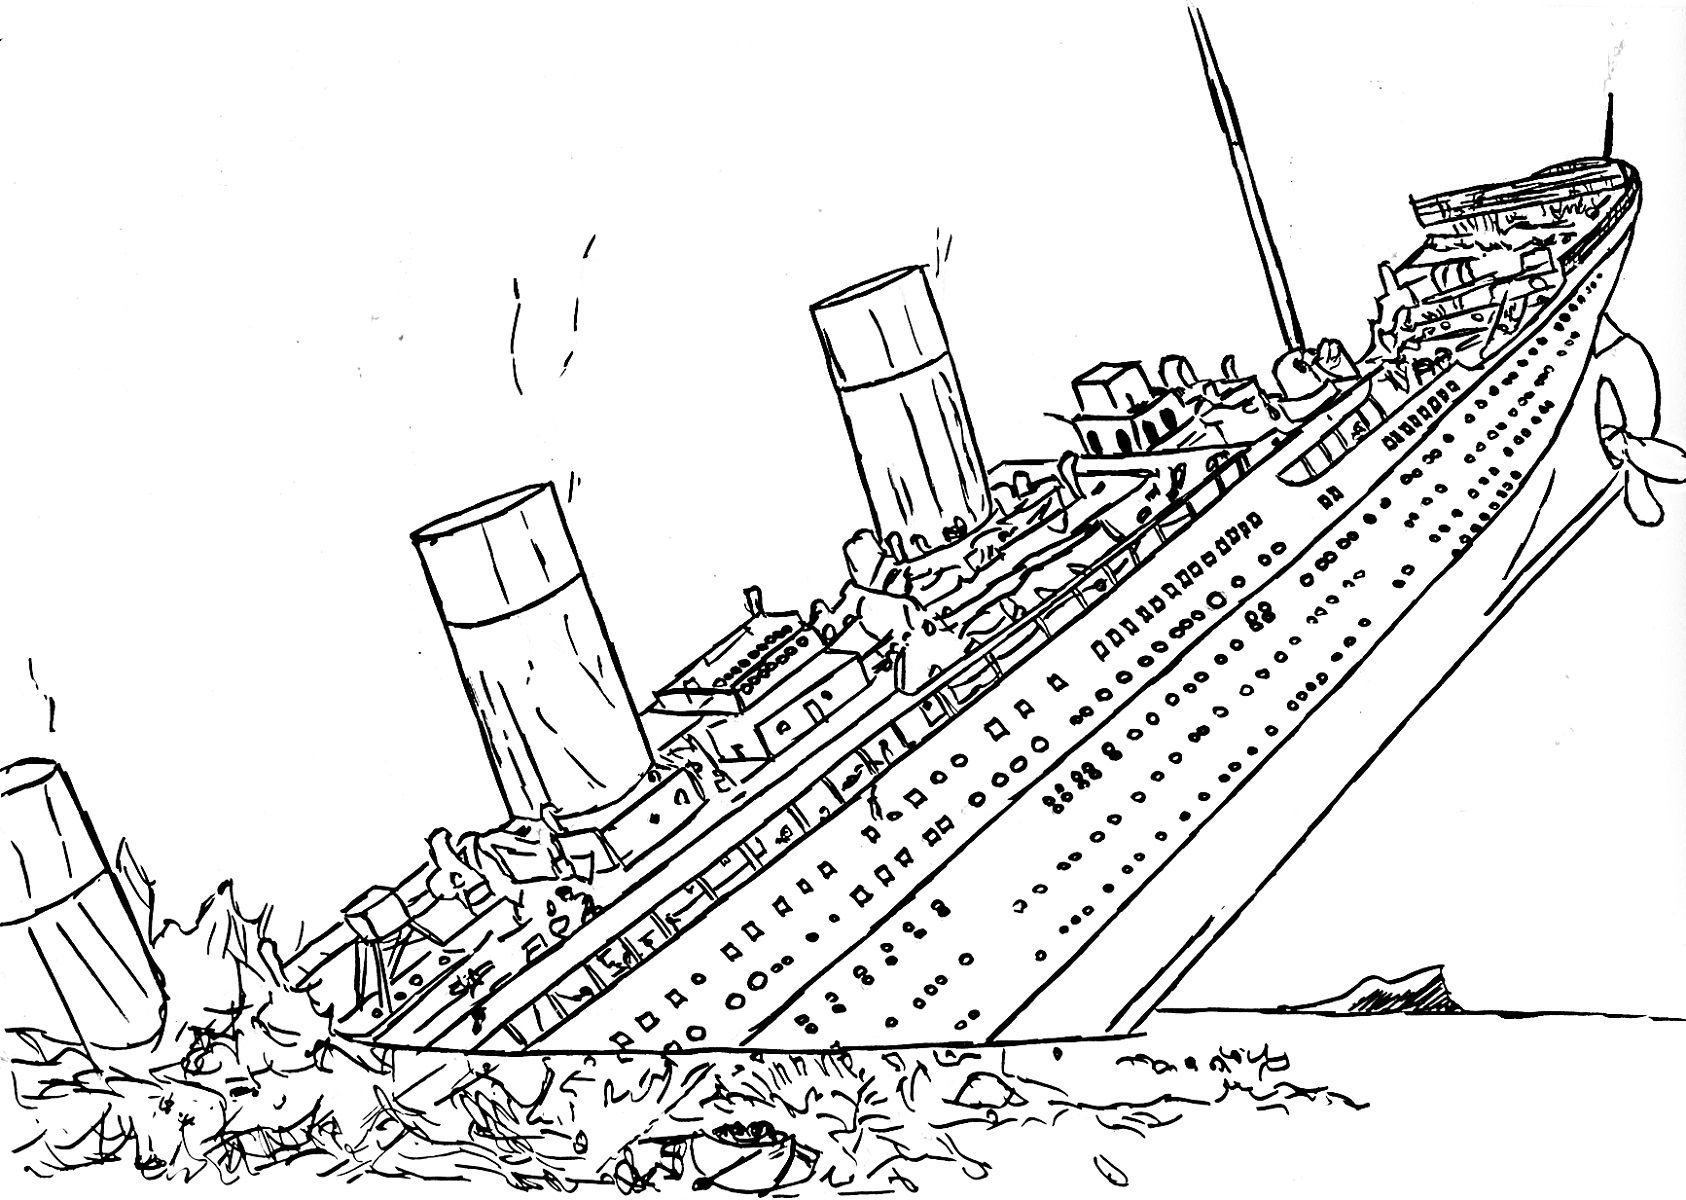 Titanic Sinking Coloring Pages Free To Print Educative Printable Coloring Pages Titanic Family Coloring Pages